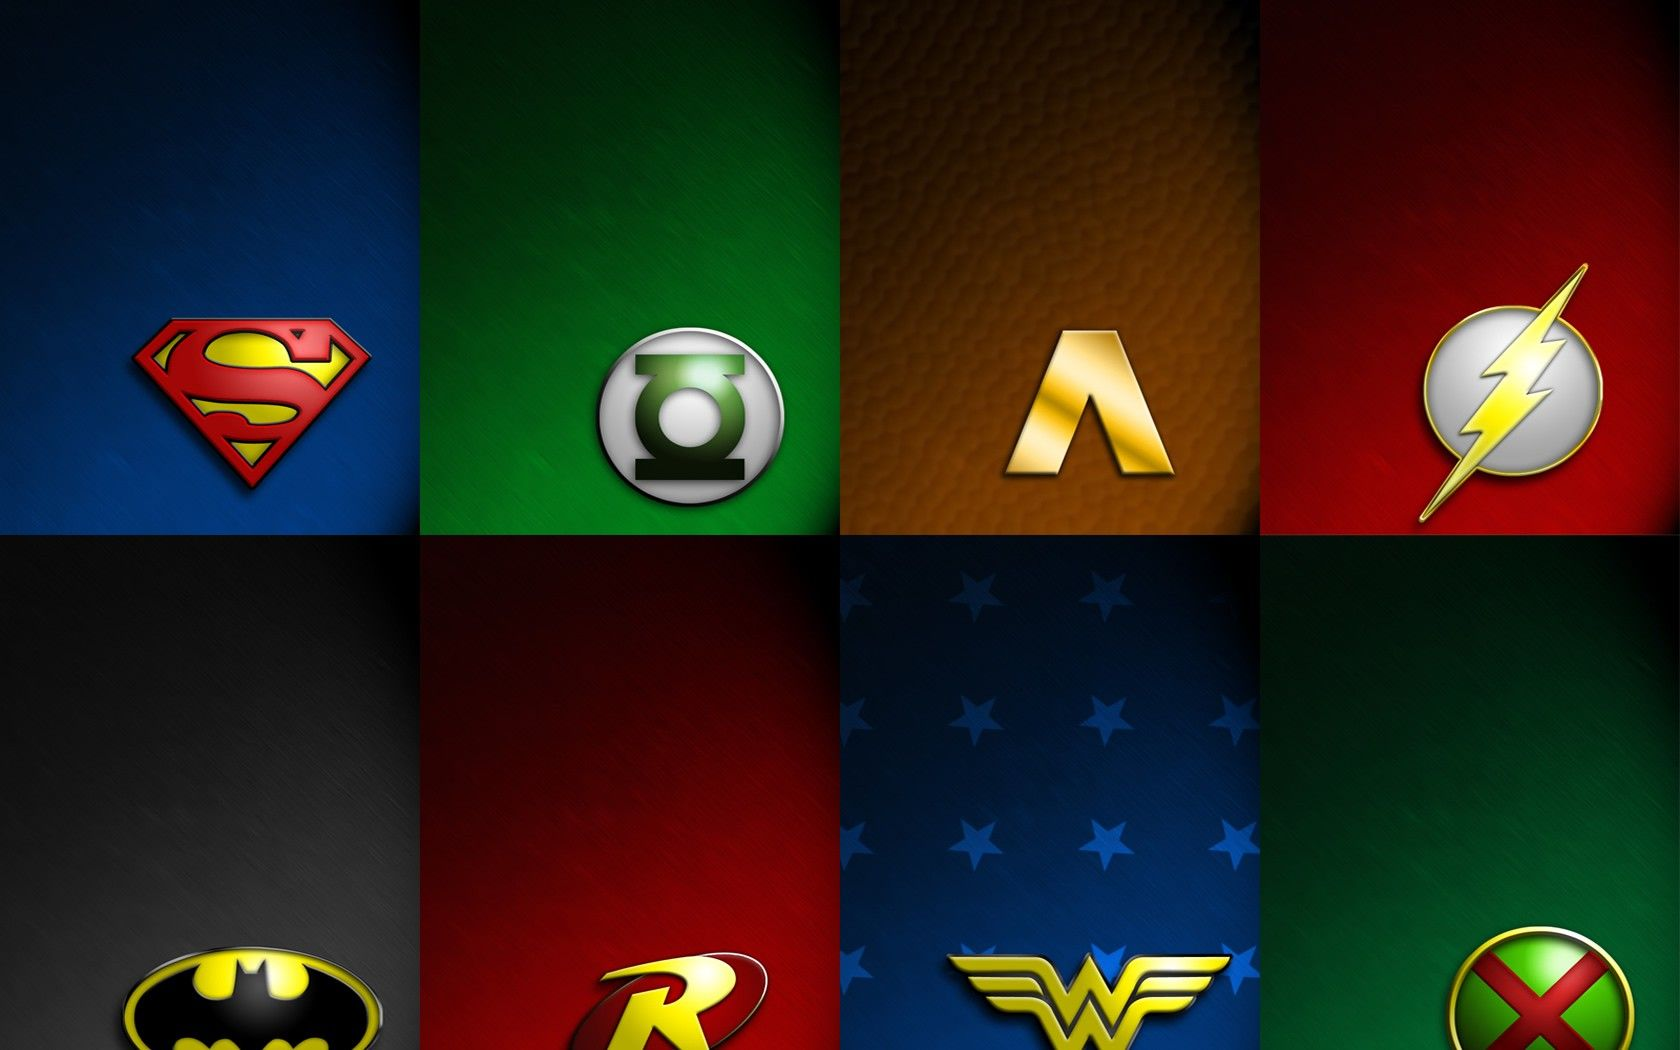 HD Wallpaper And Background Photos Of JLA Symbols For Fans DC Comics Images